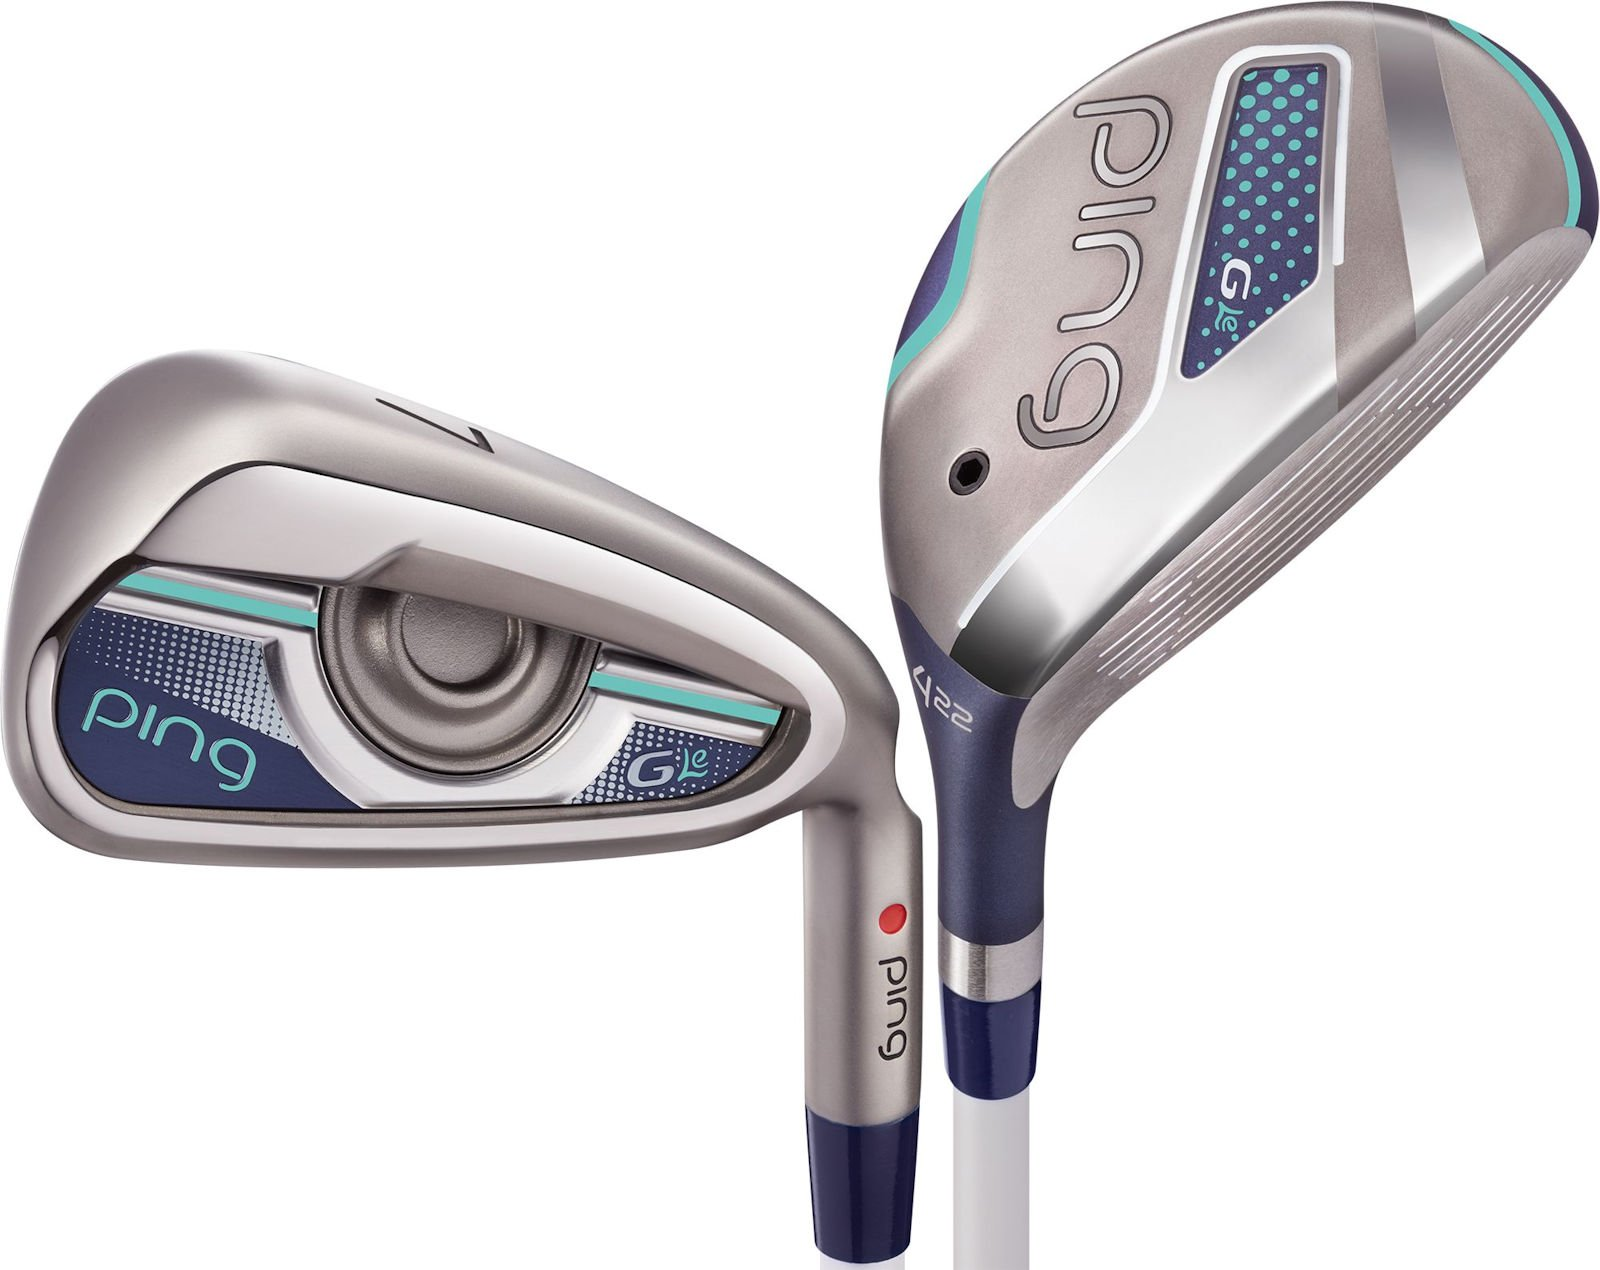 Ping Golf Women's G Le Hybrid and Iron Set, Right Hand, #4H, #5H, #6H, 7-9, Pitching & Sand Wedge